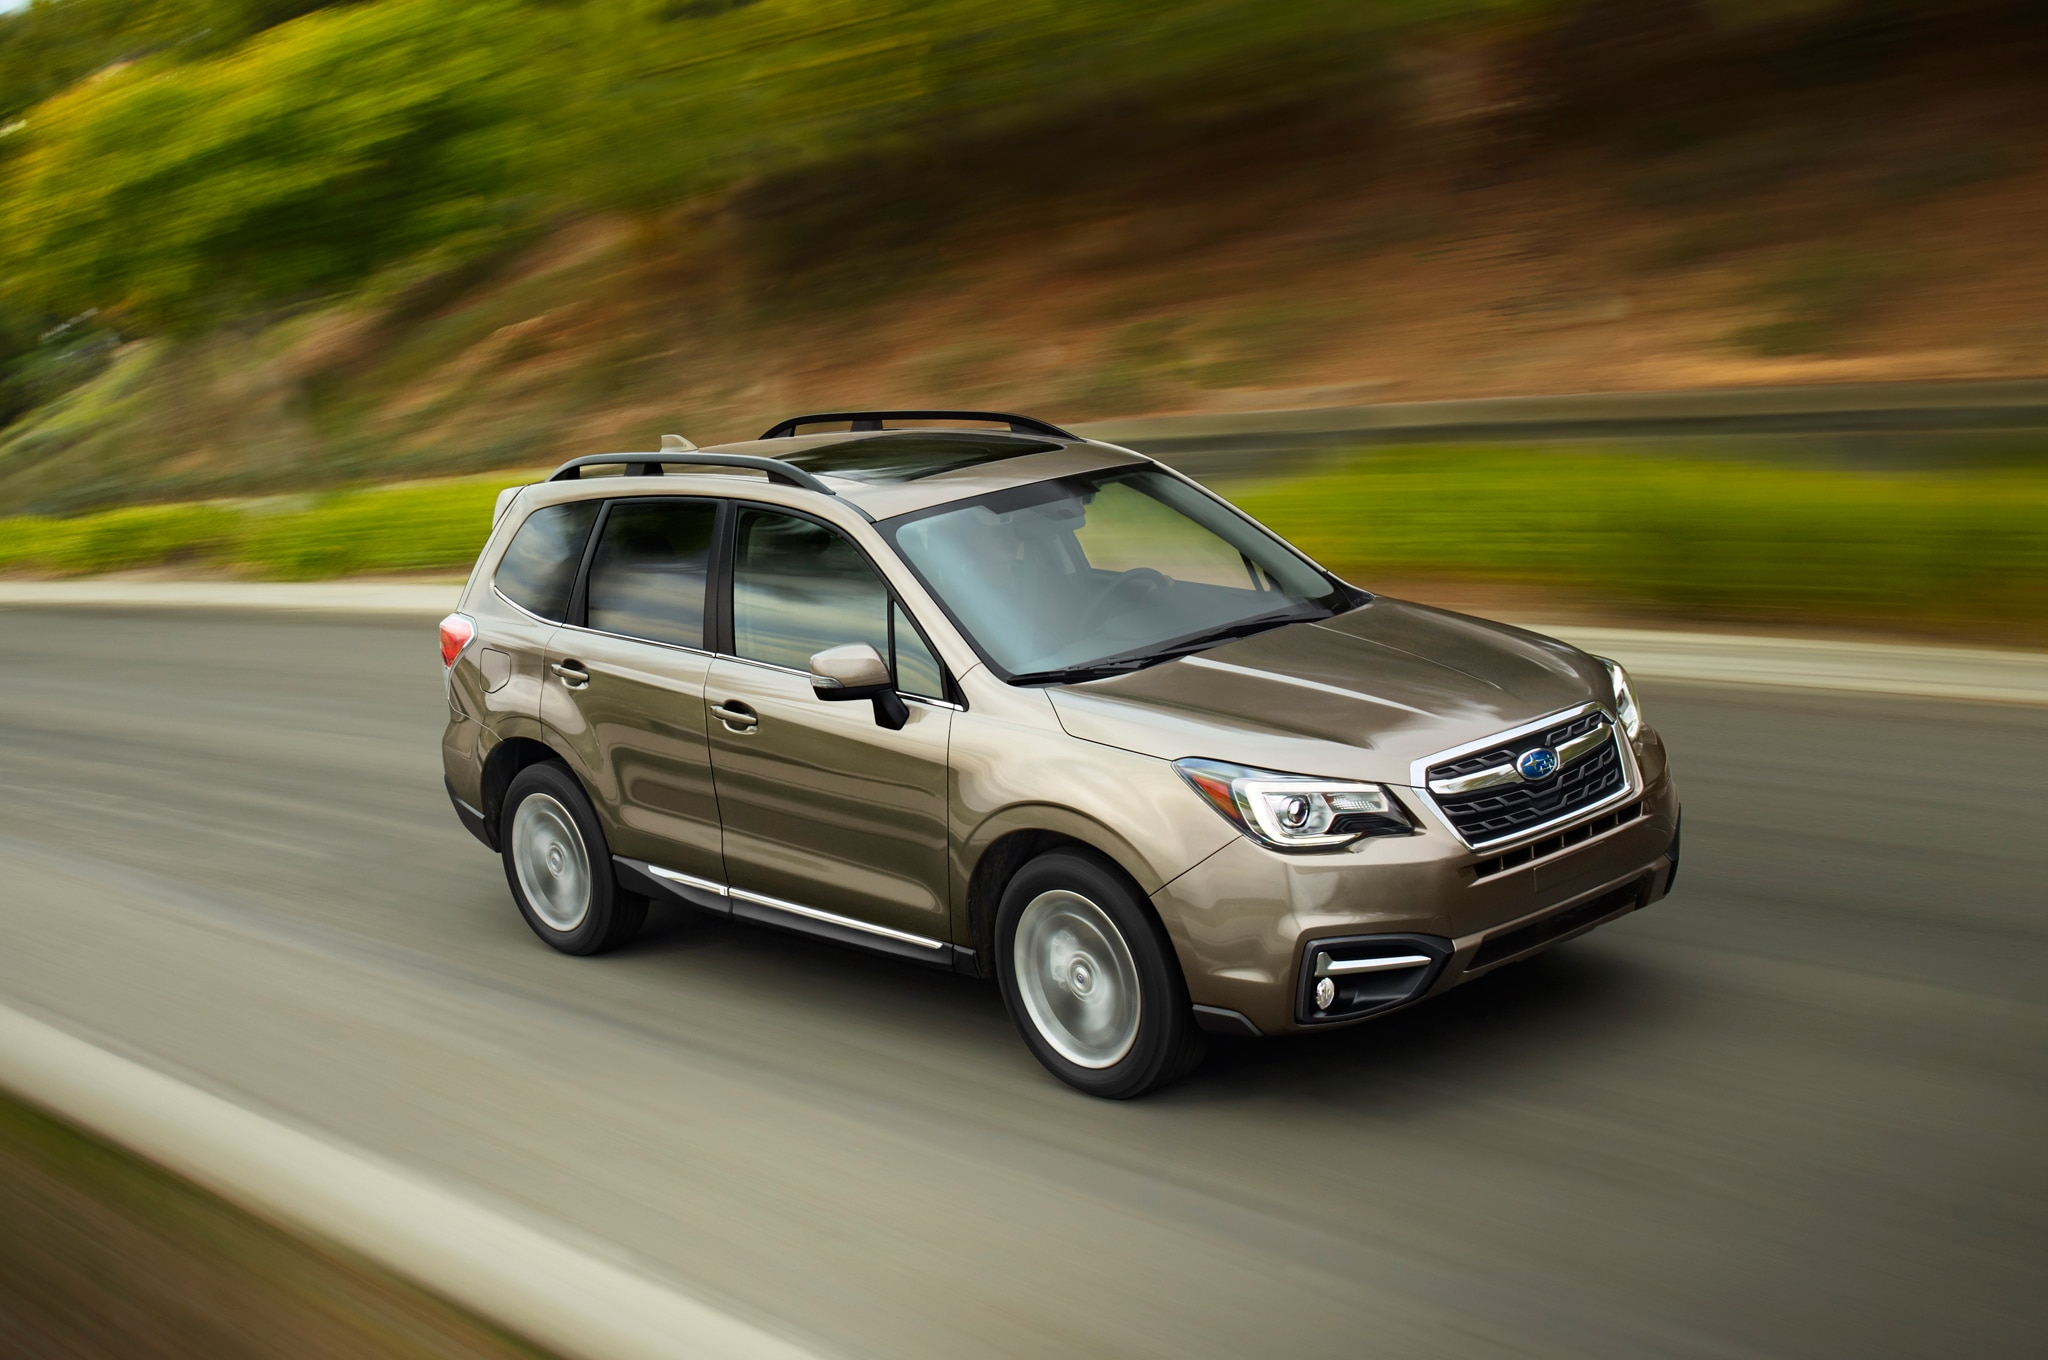 Crv 2017 Review >> 2017 Subaru Forester Priced From $23,470 | Automobile Magazine